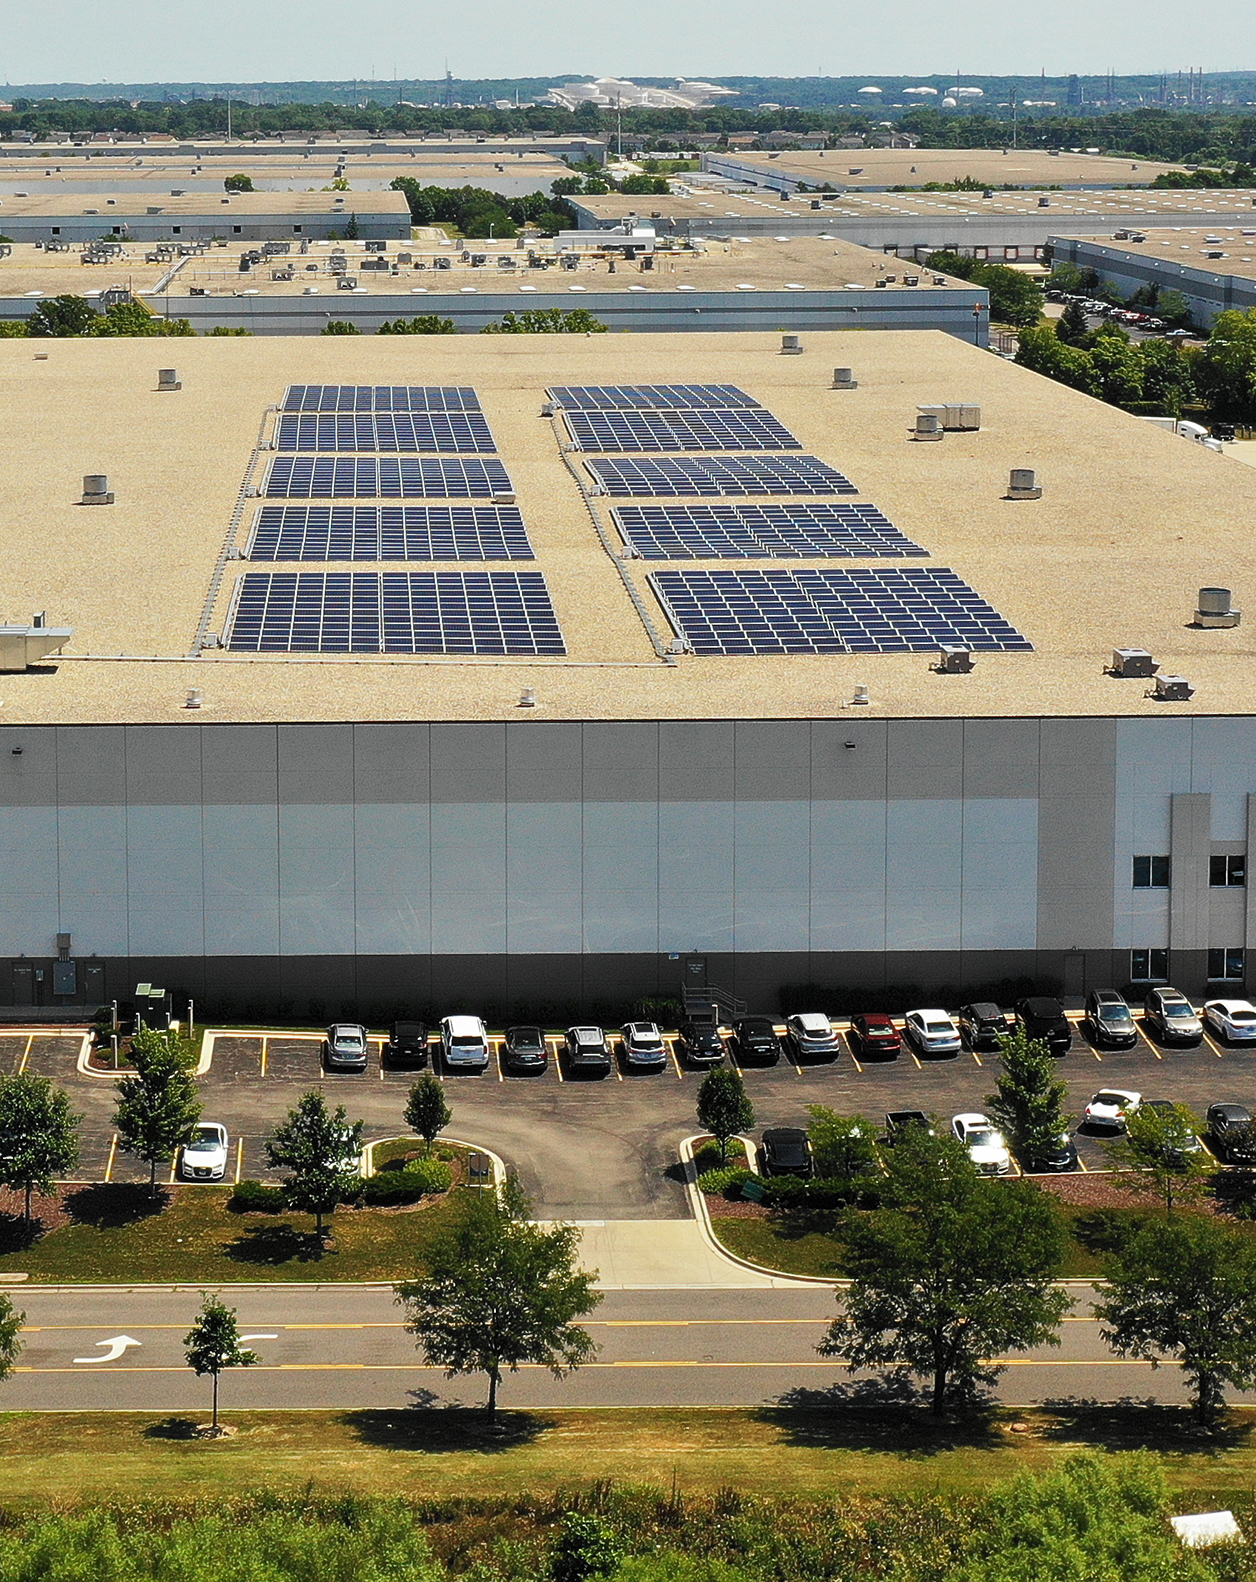 Rooftop solar installation at Ashley Furniture